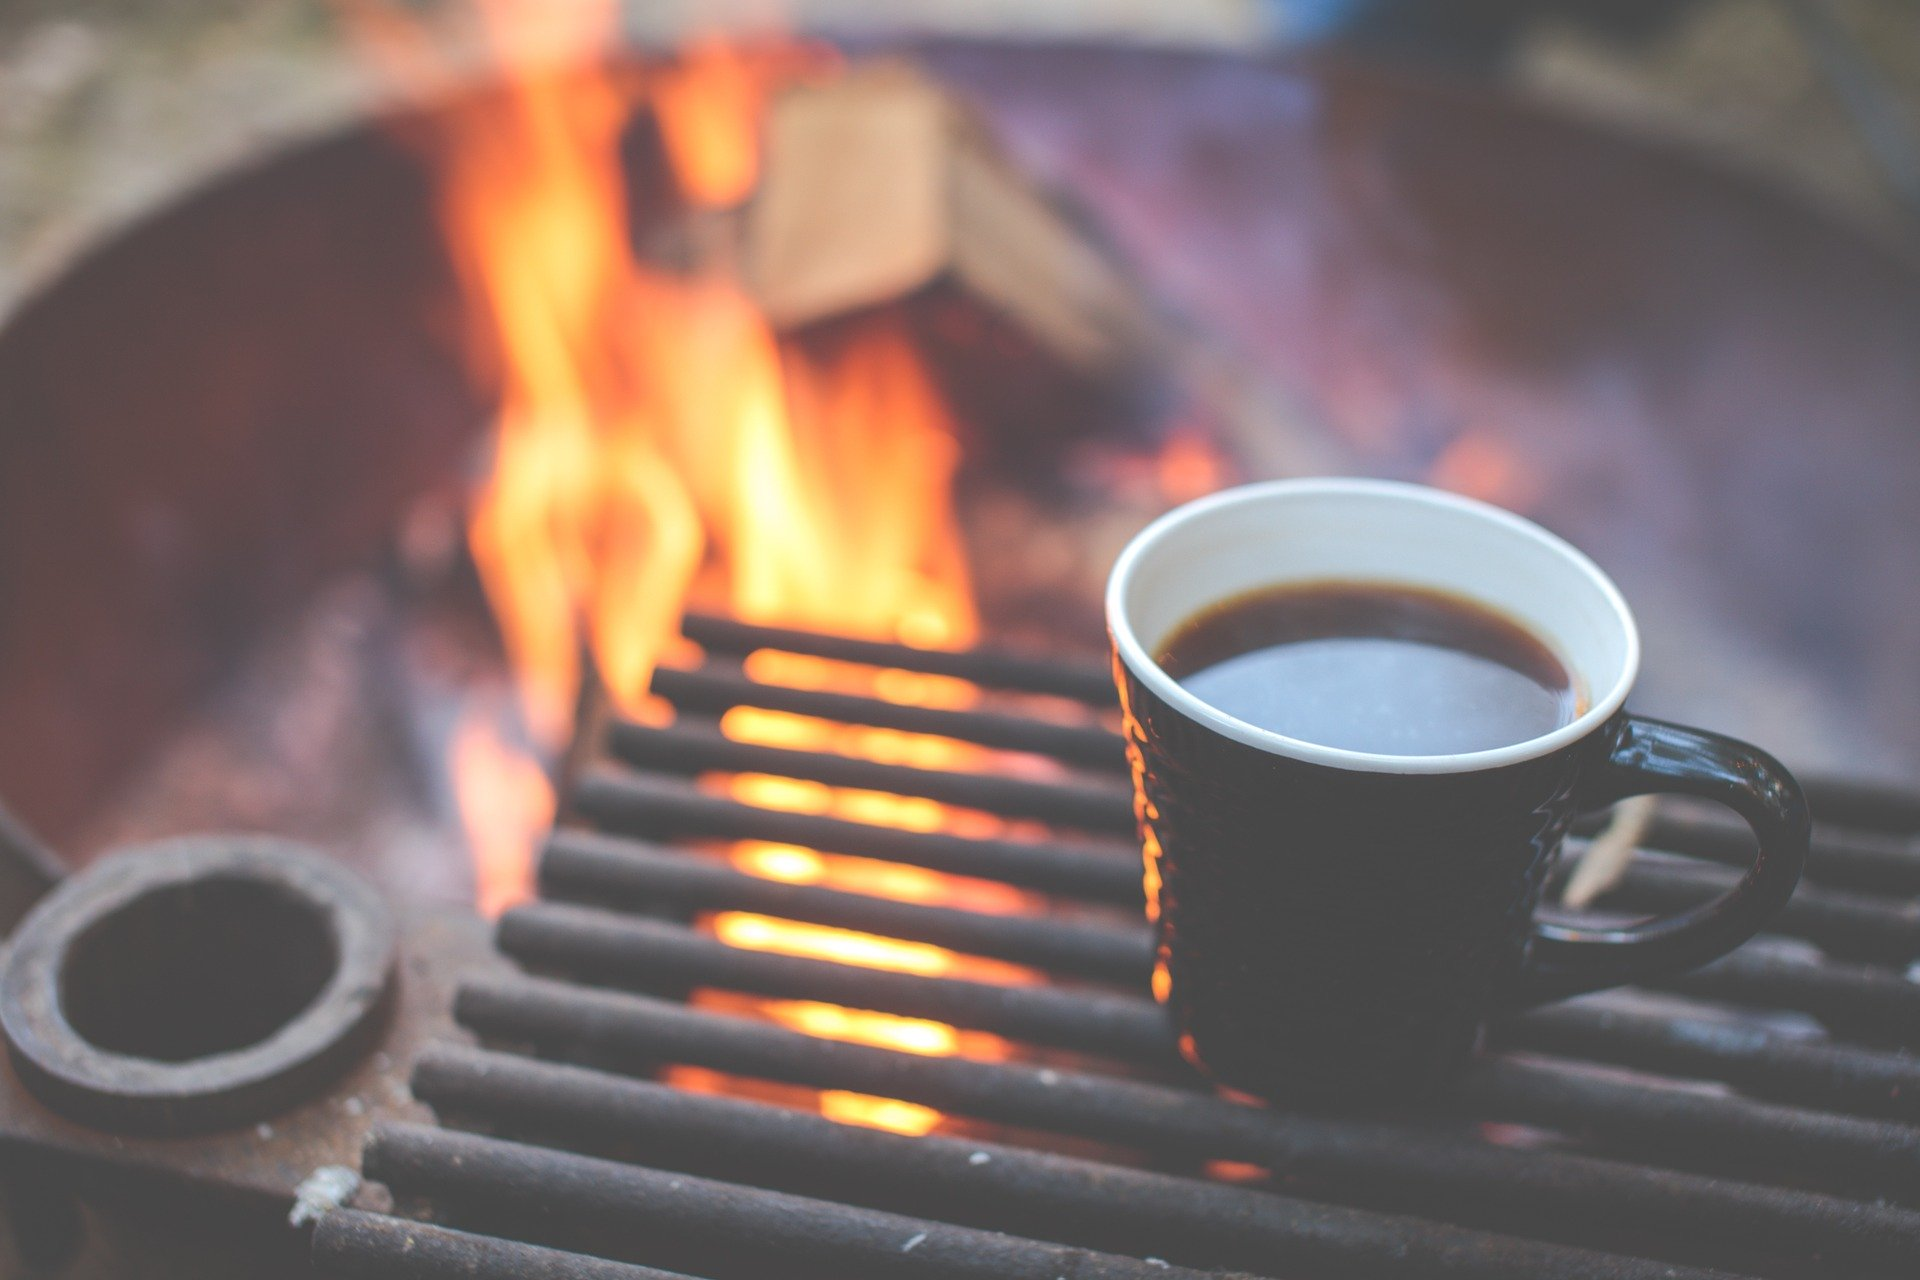 photo of a coffee mug safely placed on a grill within a burning campfire